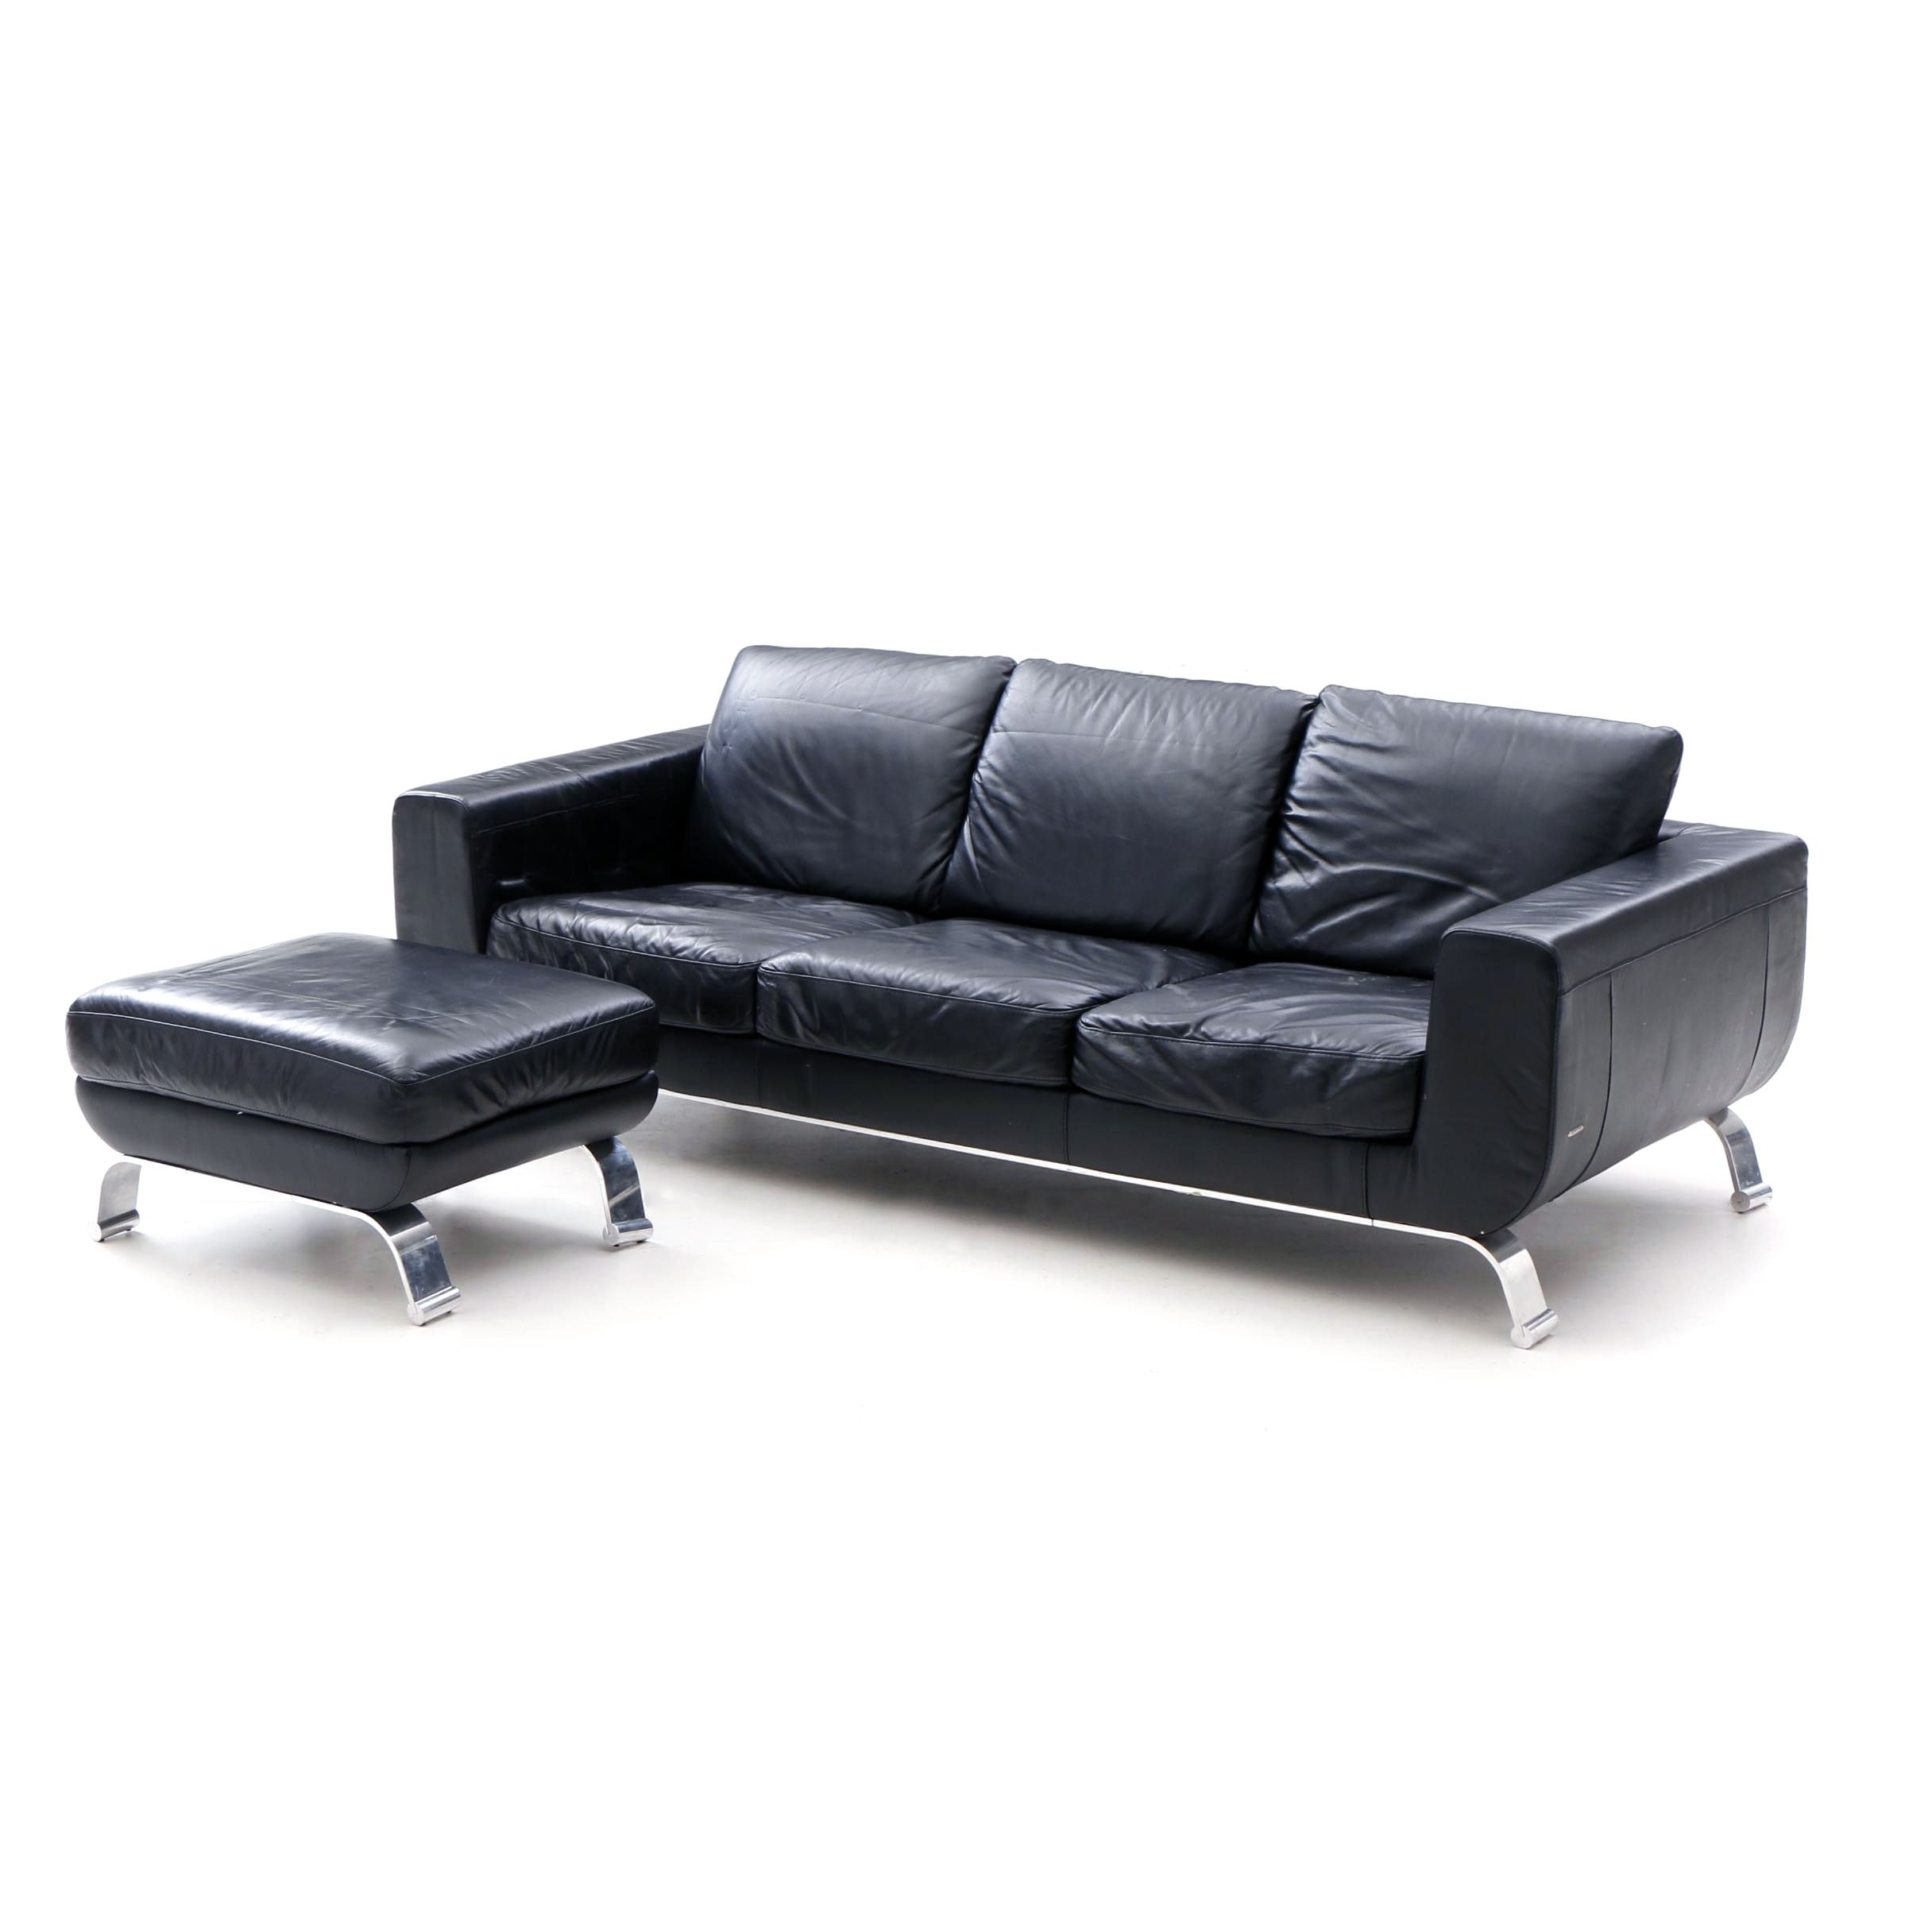 Contemporary Italian Black Leather Sofa by Natuzzi